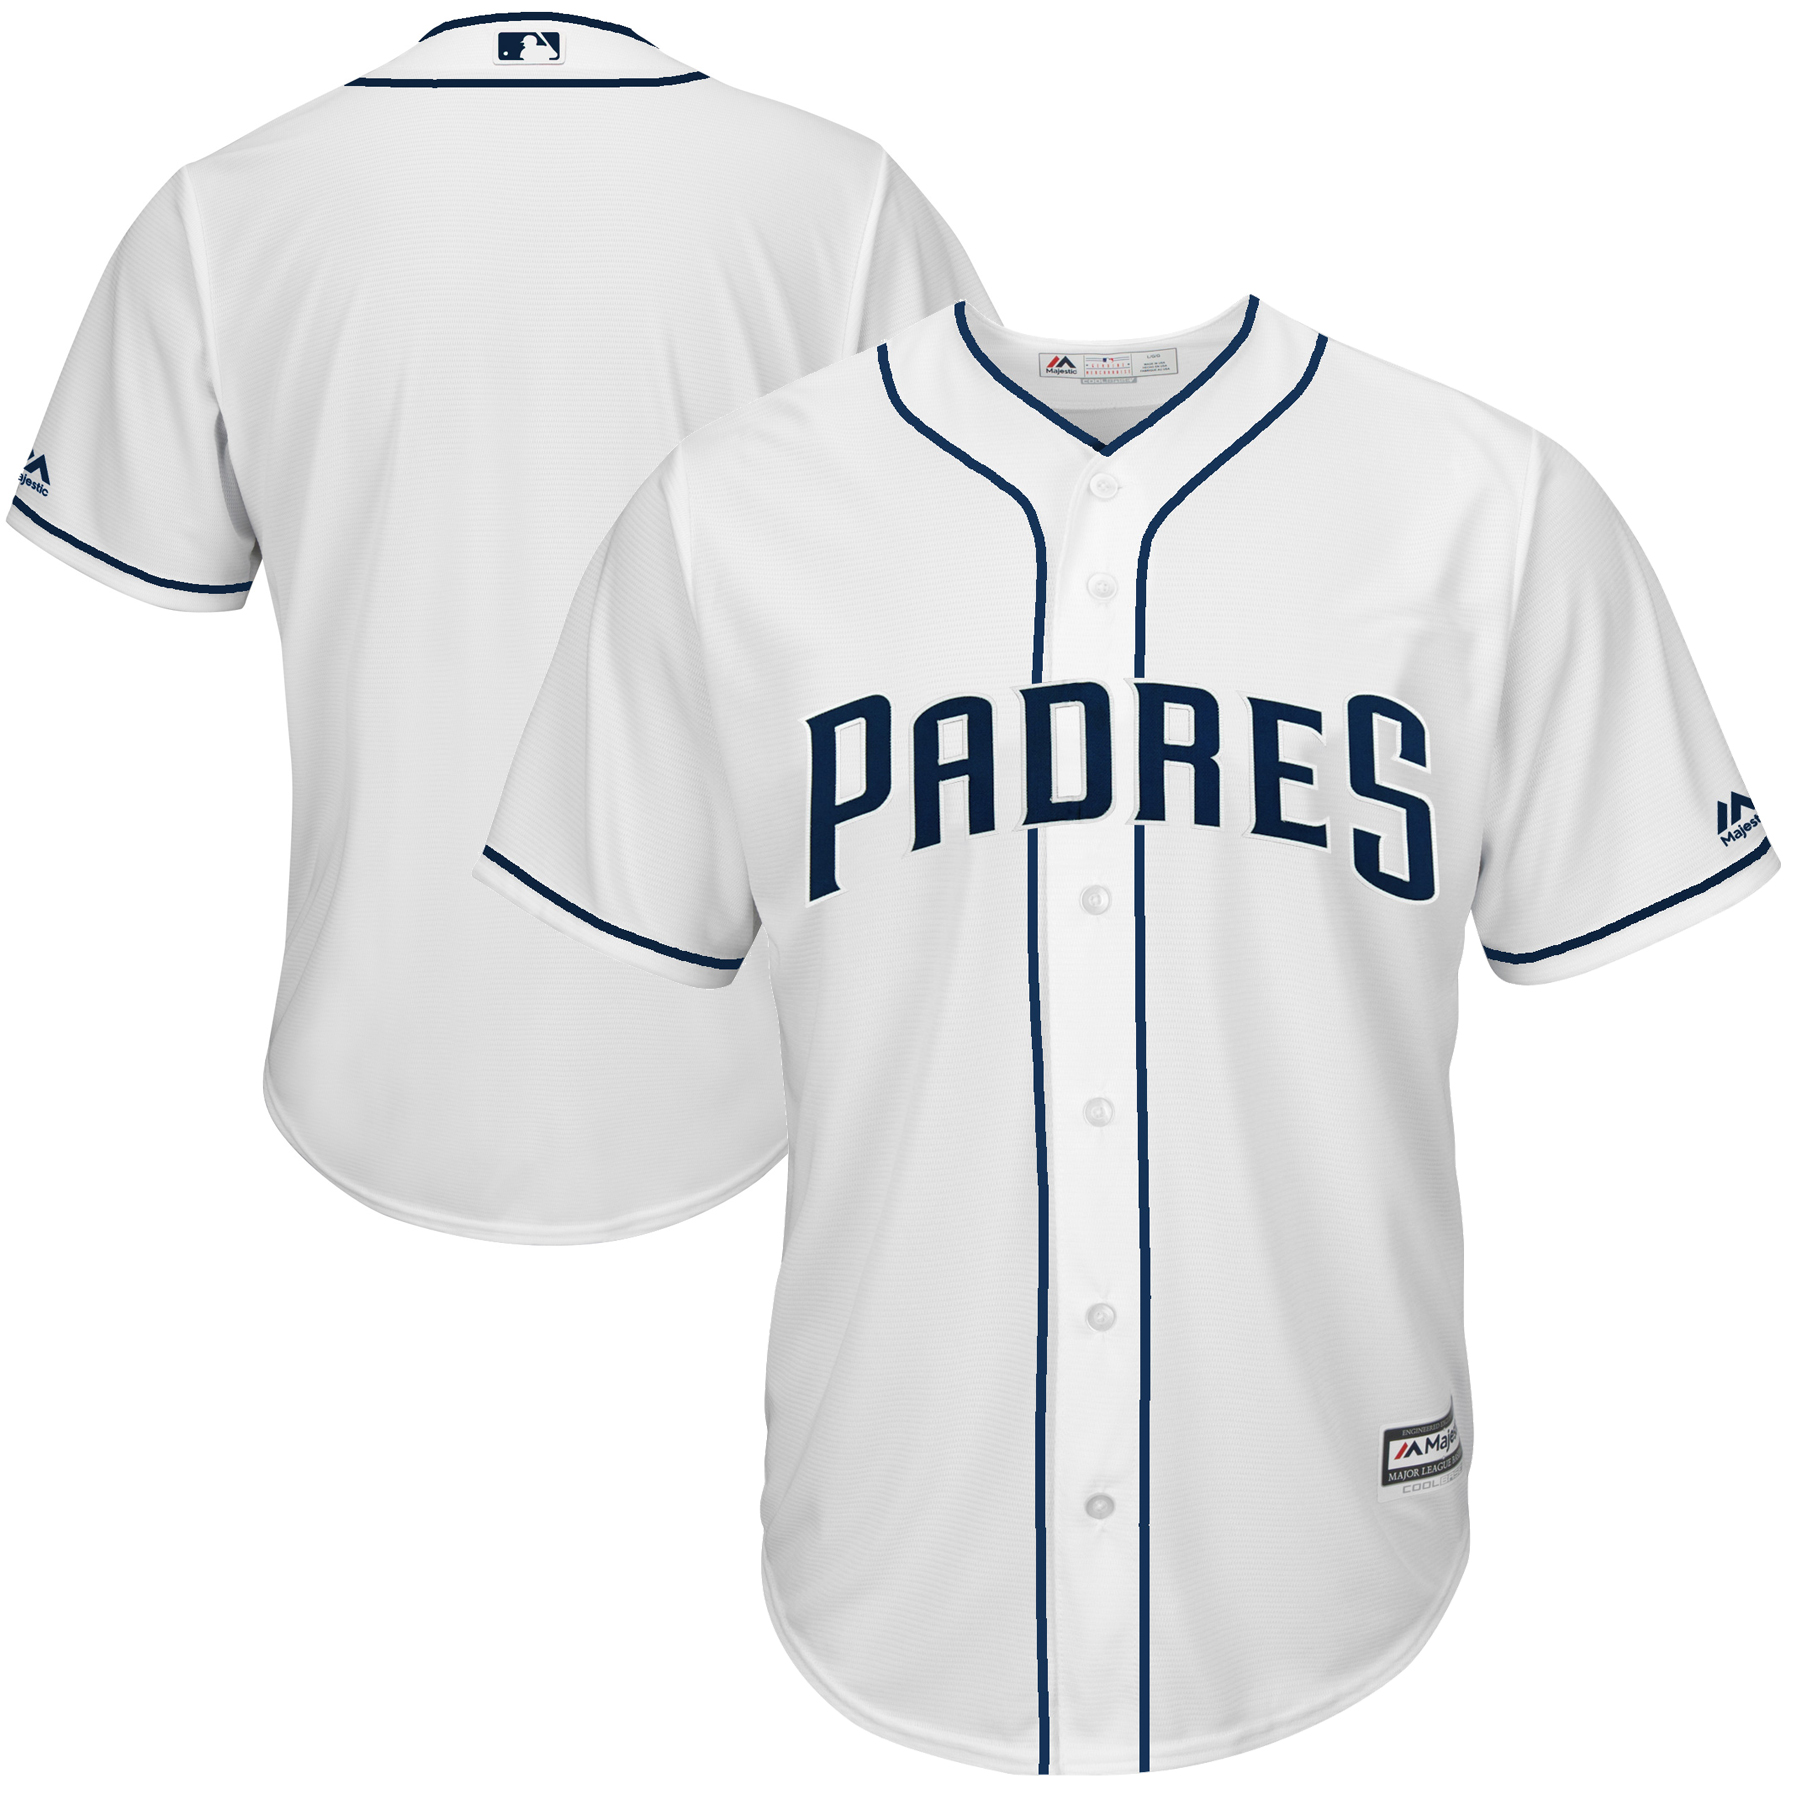 San Diego Padres Majestic Cool Base Team Jersey - White-